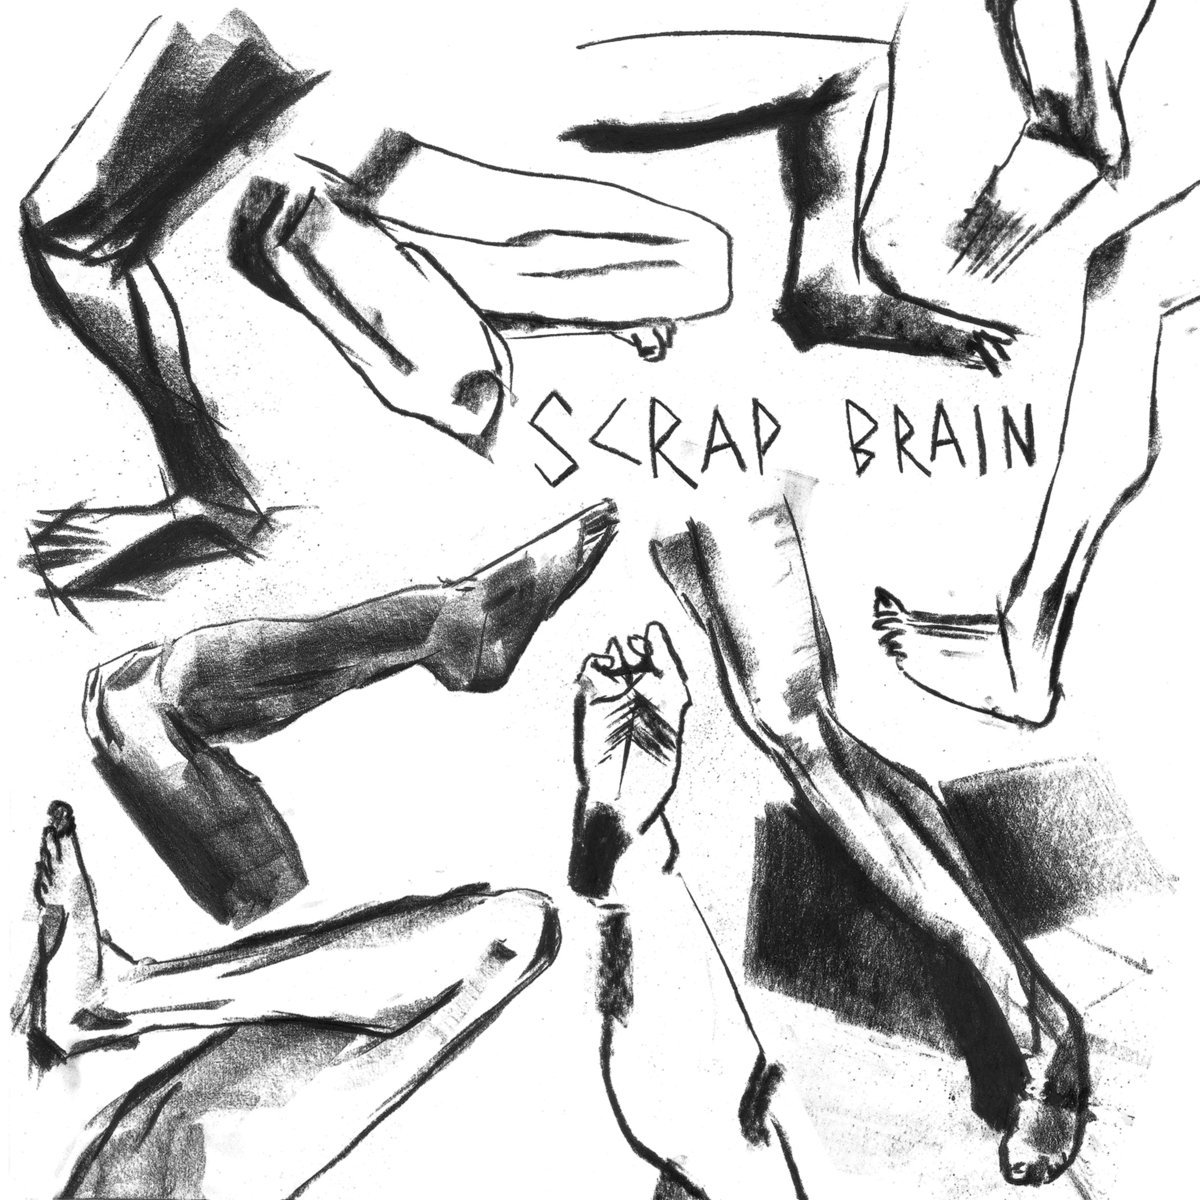 Check out London noise-punk band Scrap Brain's urgent, hectic debut EP Unhappy Hardcore https://t.co/SxK0VNqKs5 https://t.co/TOFYcCUydm